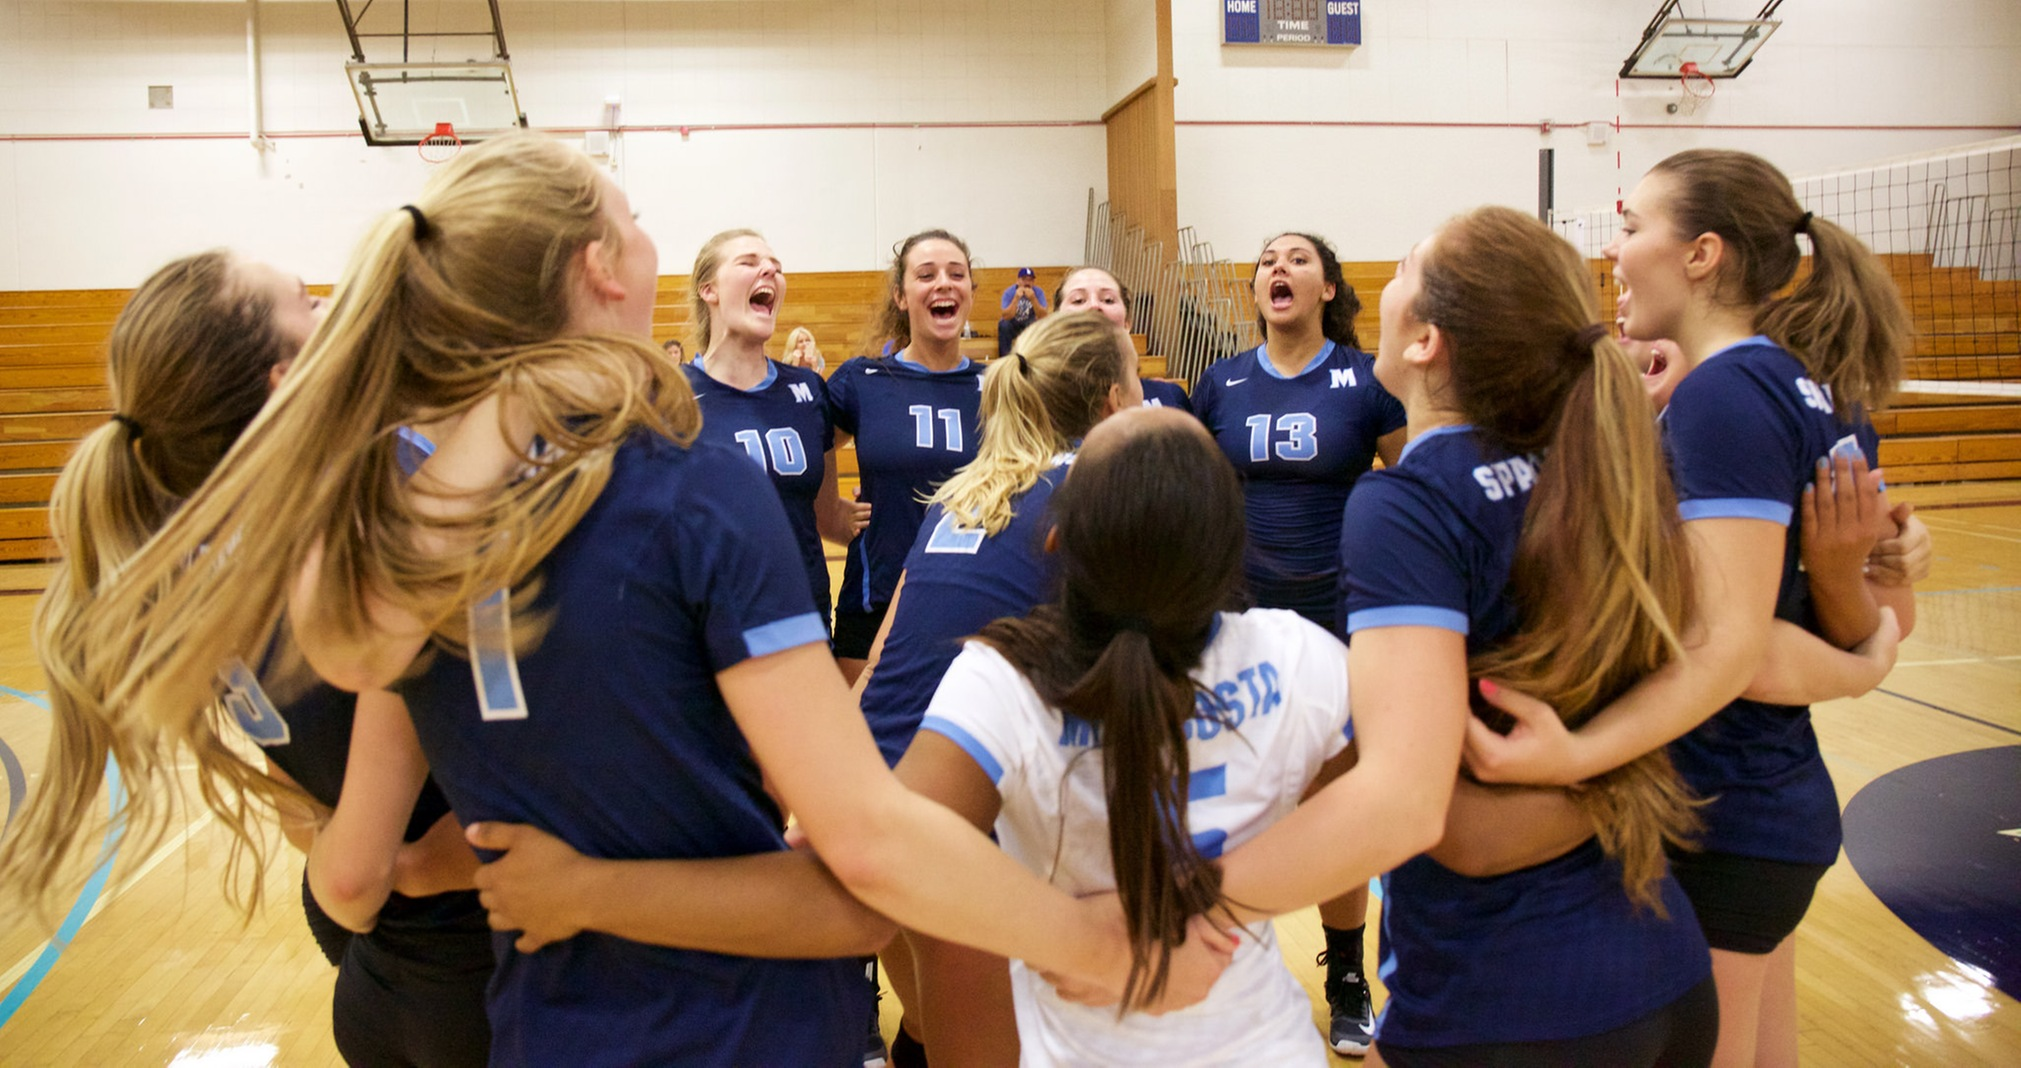 Women's Volleyball Team pre-game cheer.